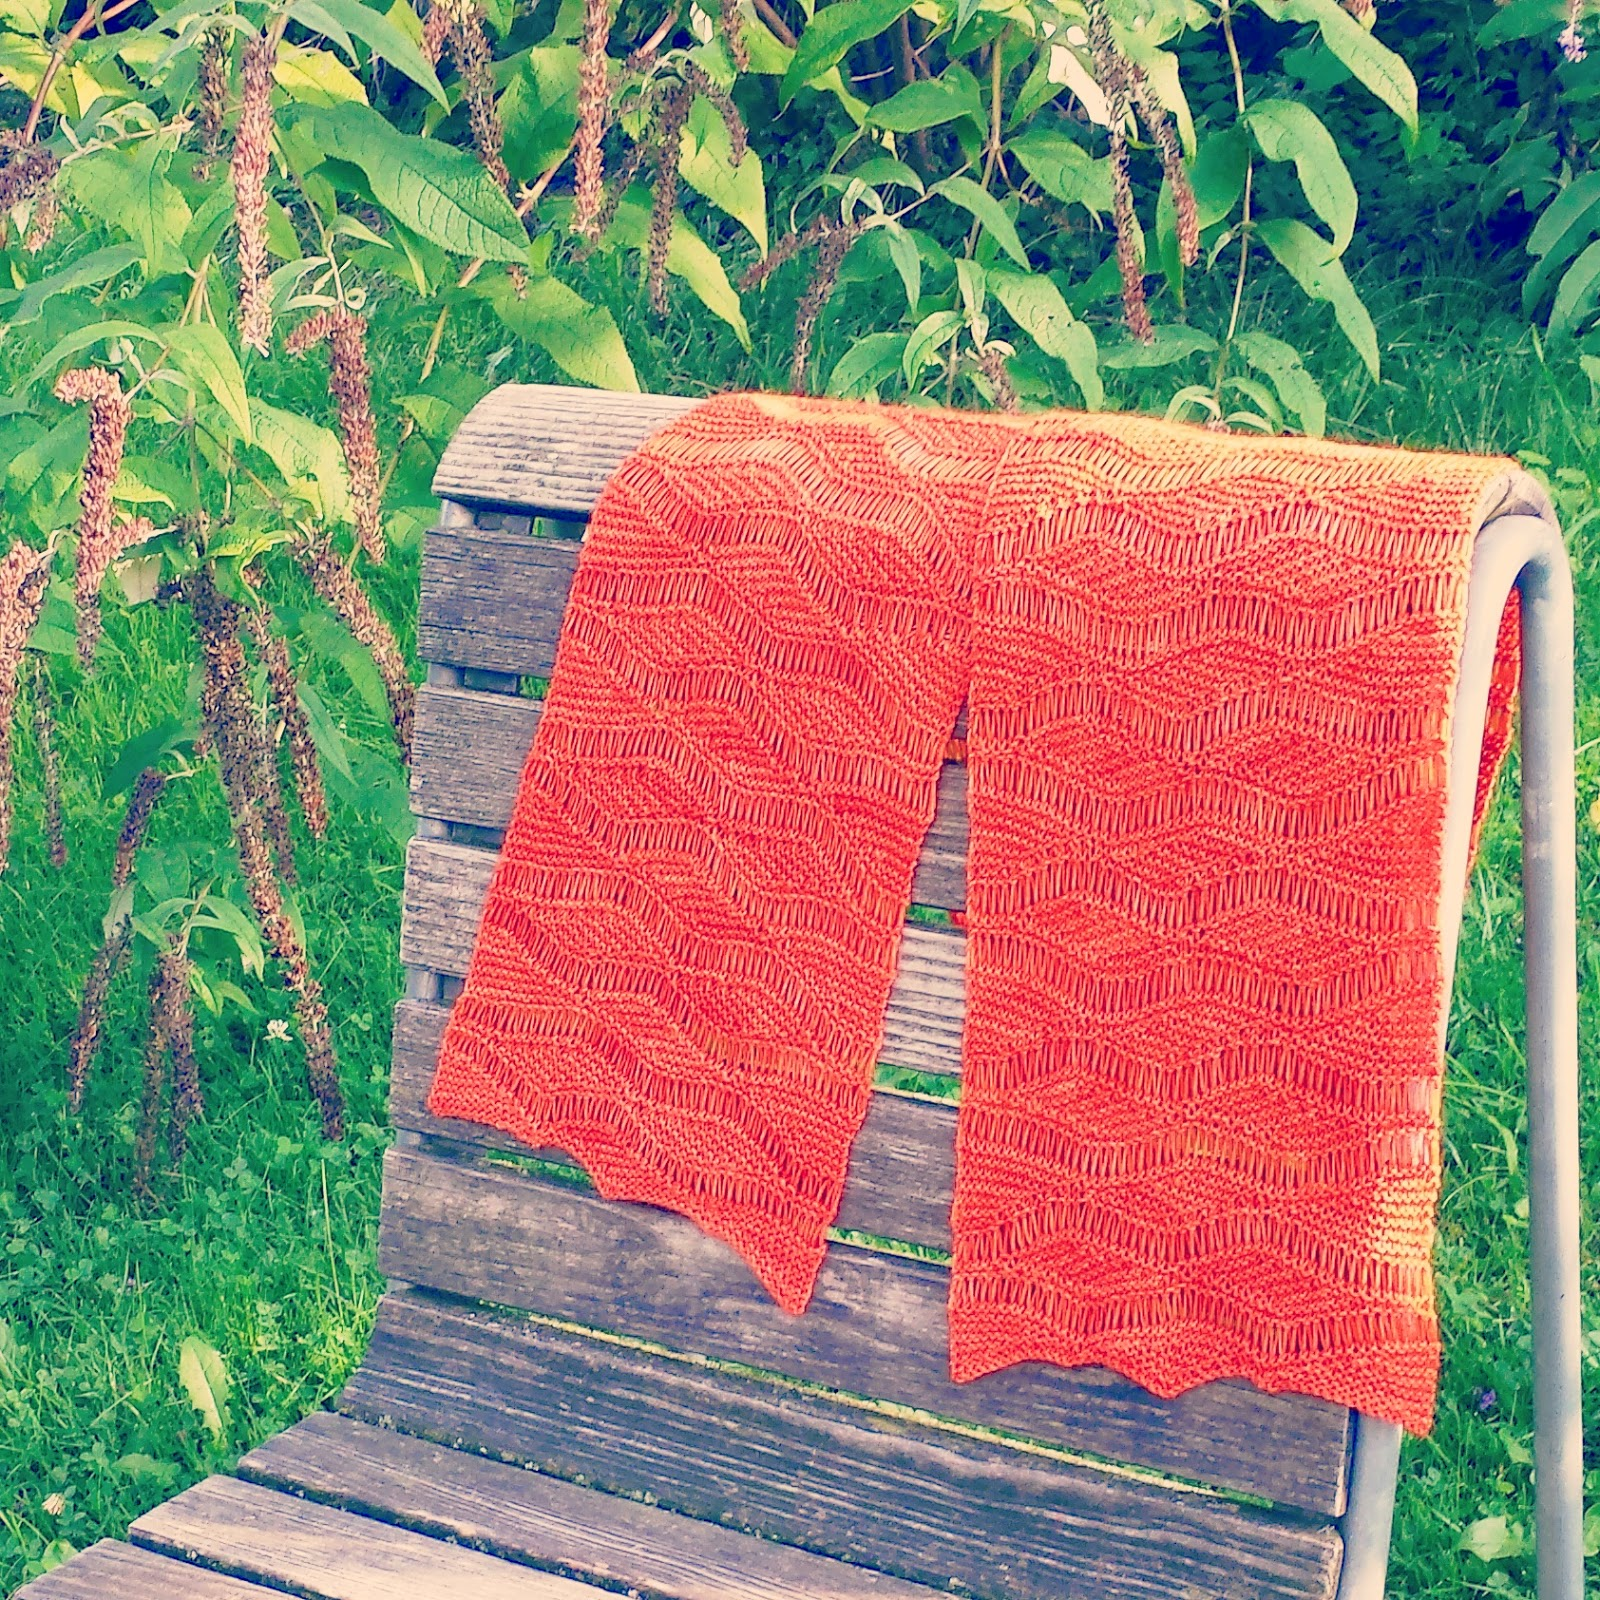 Short Row Scarf Knitting Pattern : Knitting and so on: Wellengang Short Row Scarf